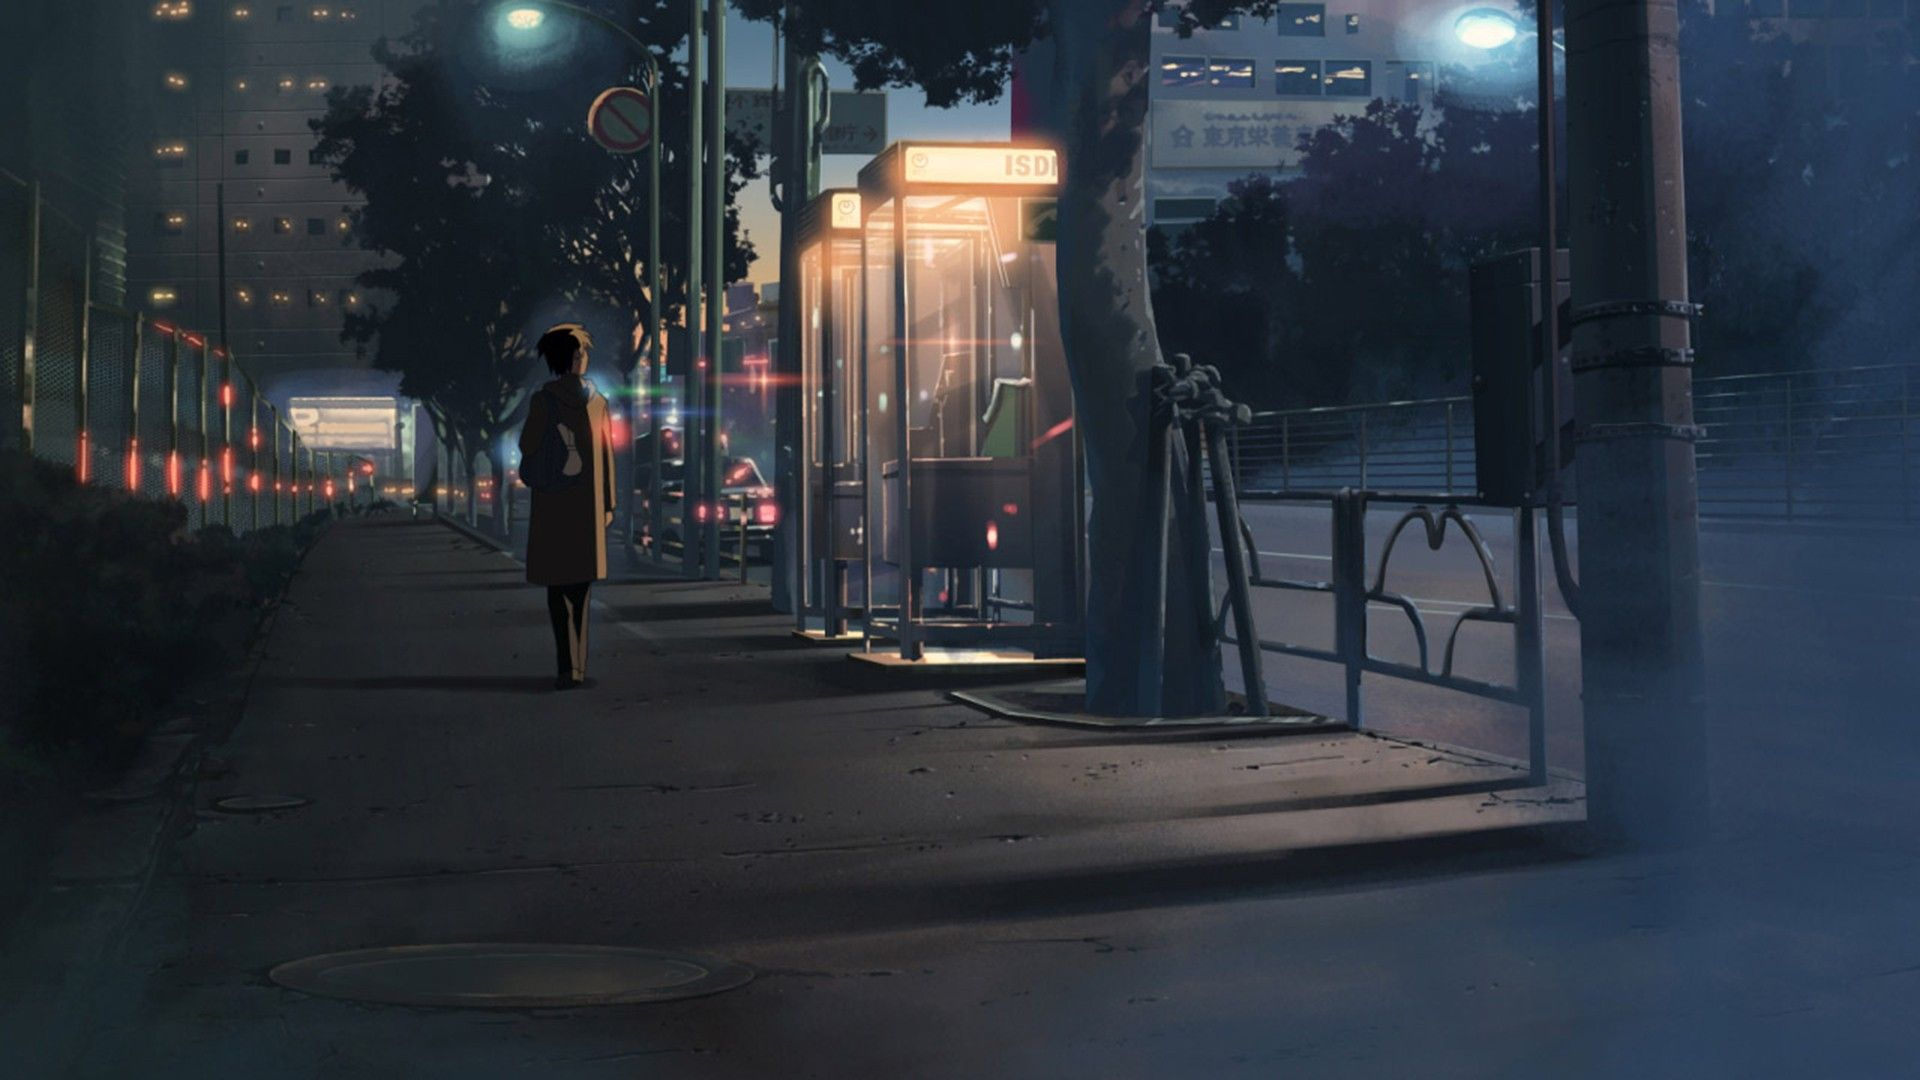 anime 1920x1080 night city 5 centimeters per second